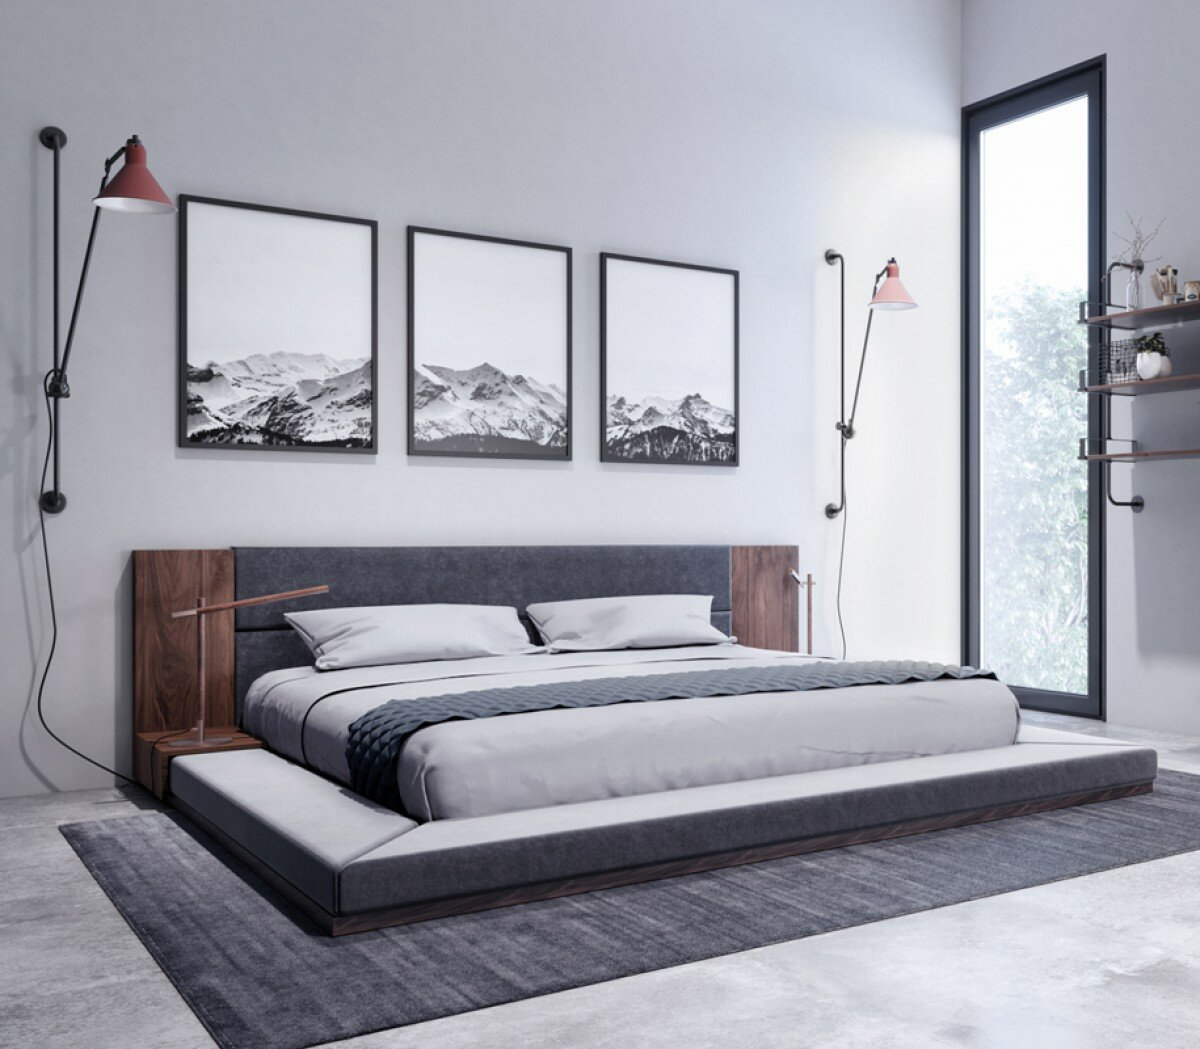 Foundry select defalco platform bed our sku fnds3324 mpn 026959c8dc364c62a2c610243bd5b8e7